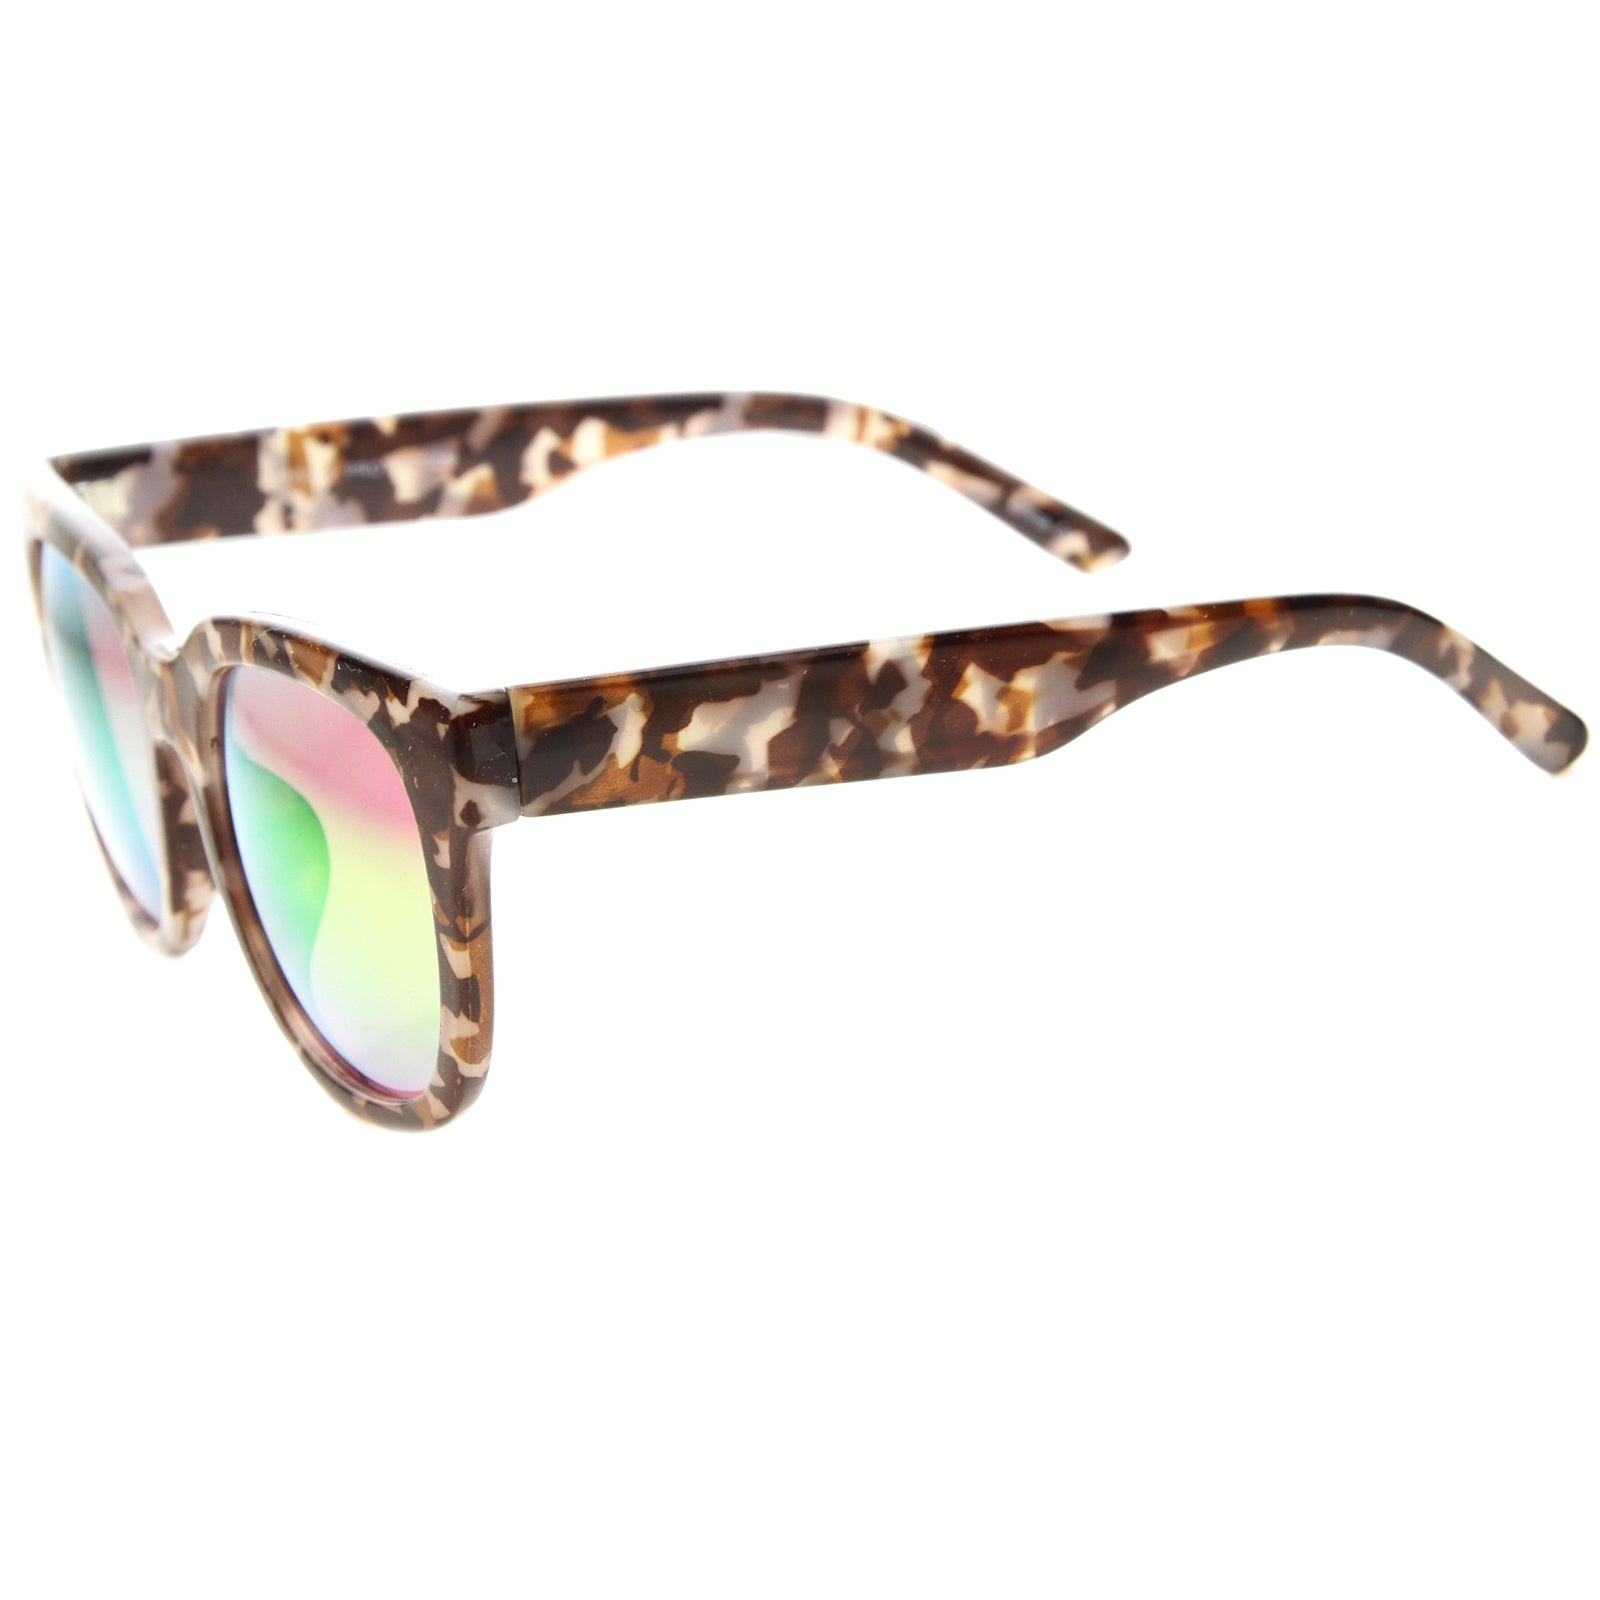 Womens Cat Eye Sunglasses With UV400 Protected Mirrored Lens - sunglass.la - 11